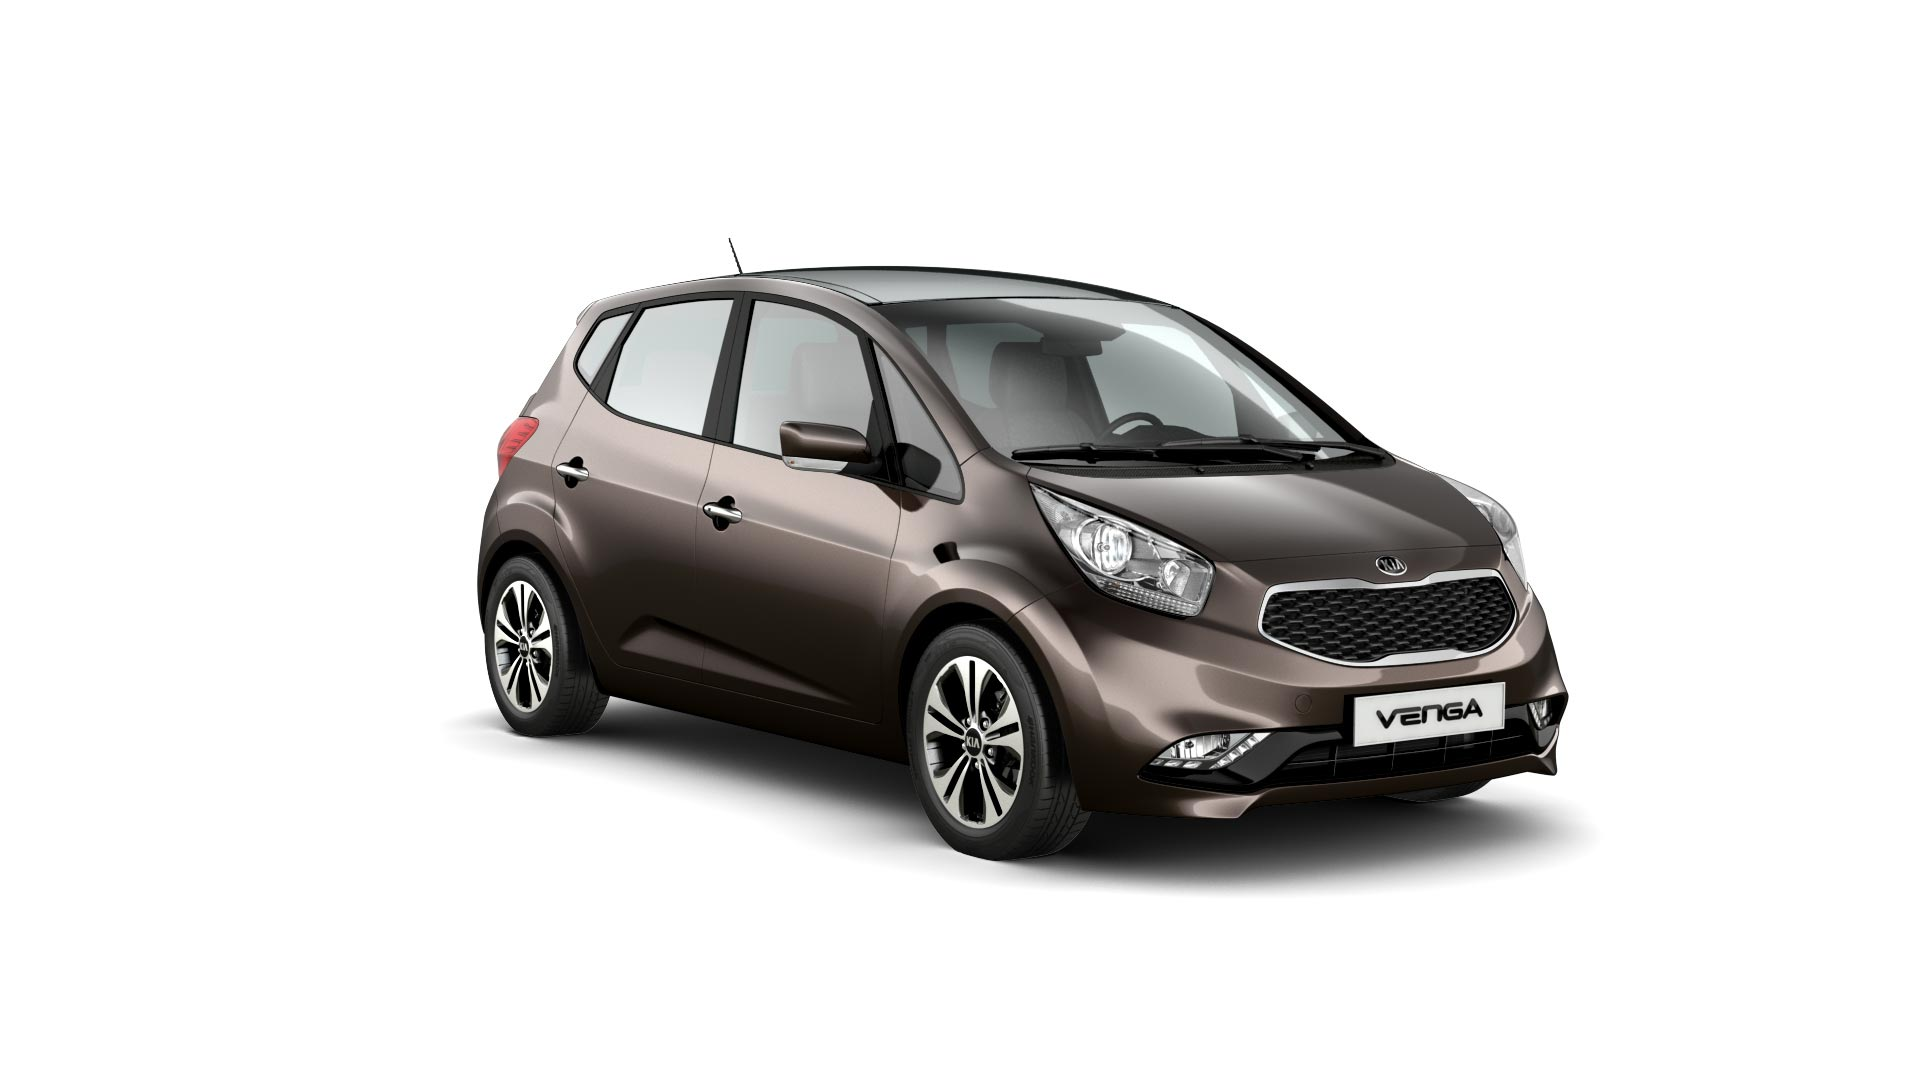 kia venga, photo #1